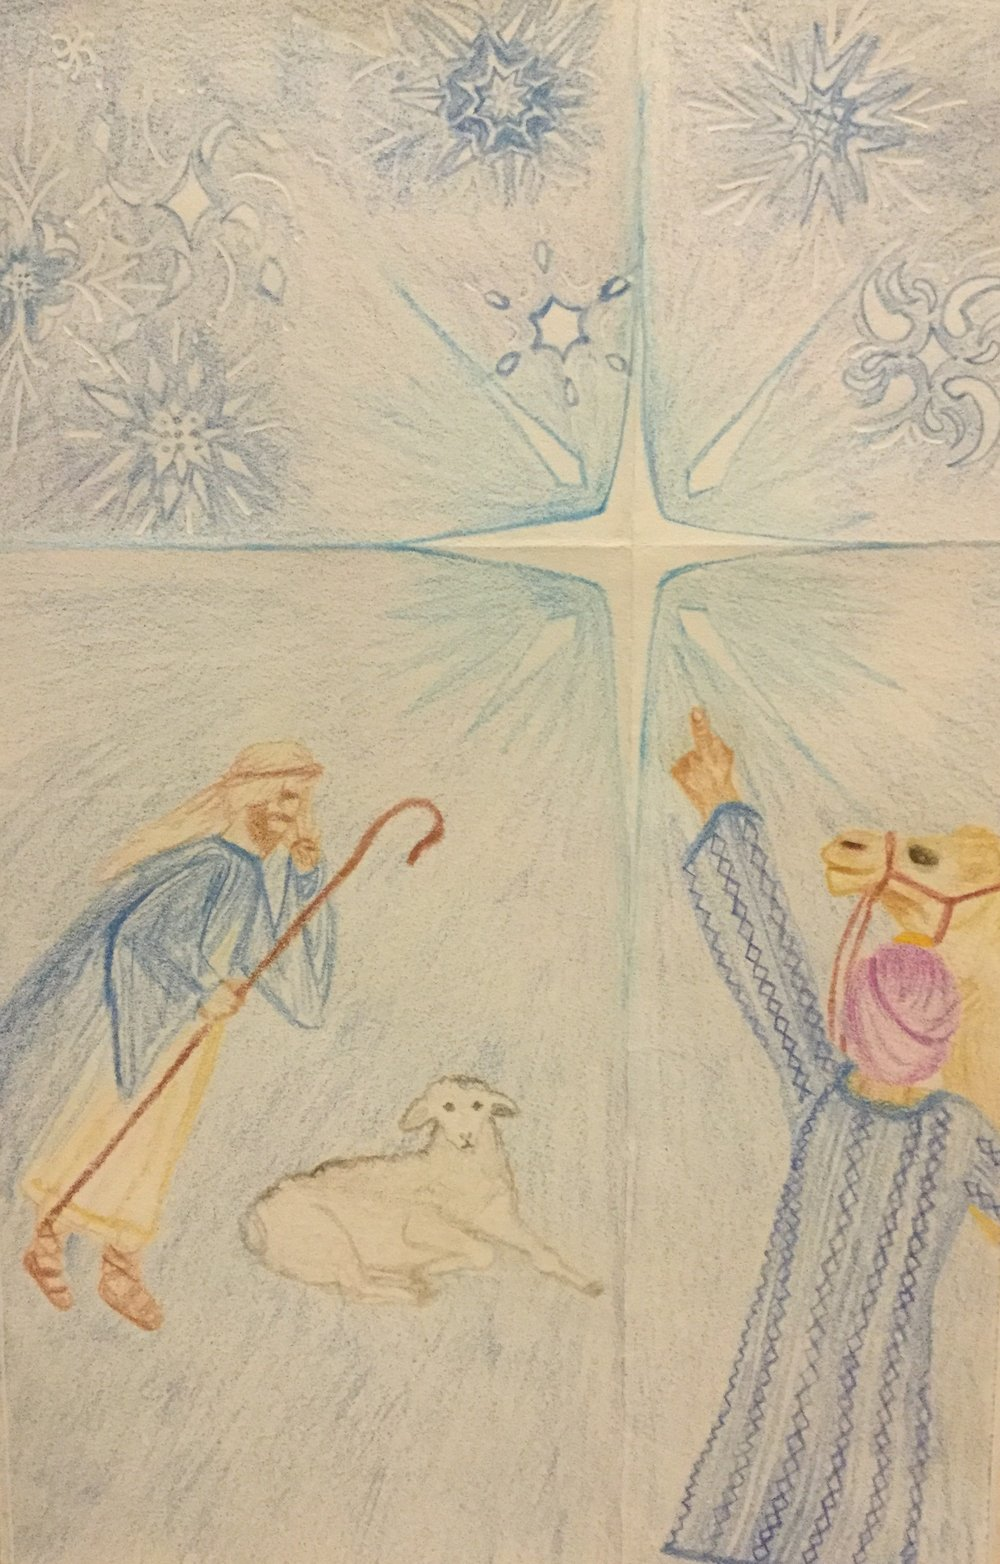 Art by Vikki Williams prompts some thoughts on shepherds from Wil Triggs